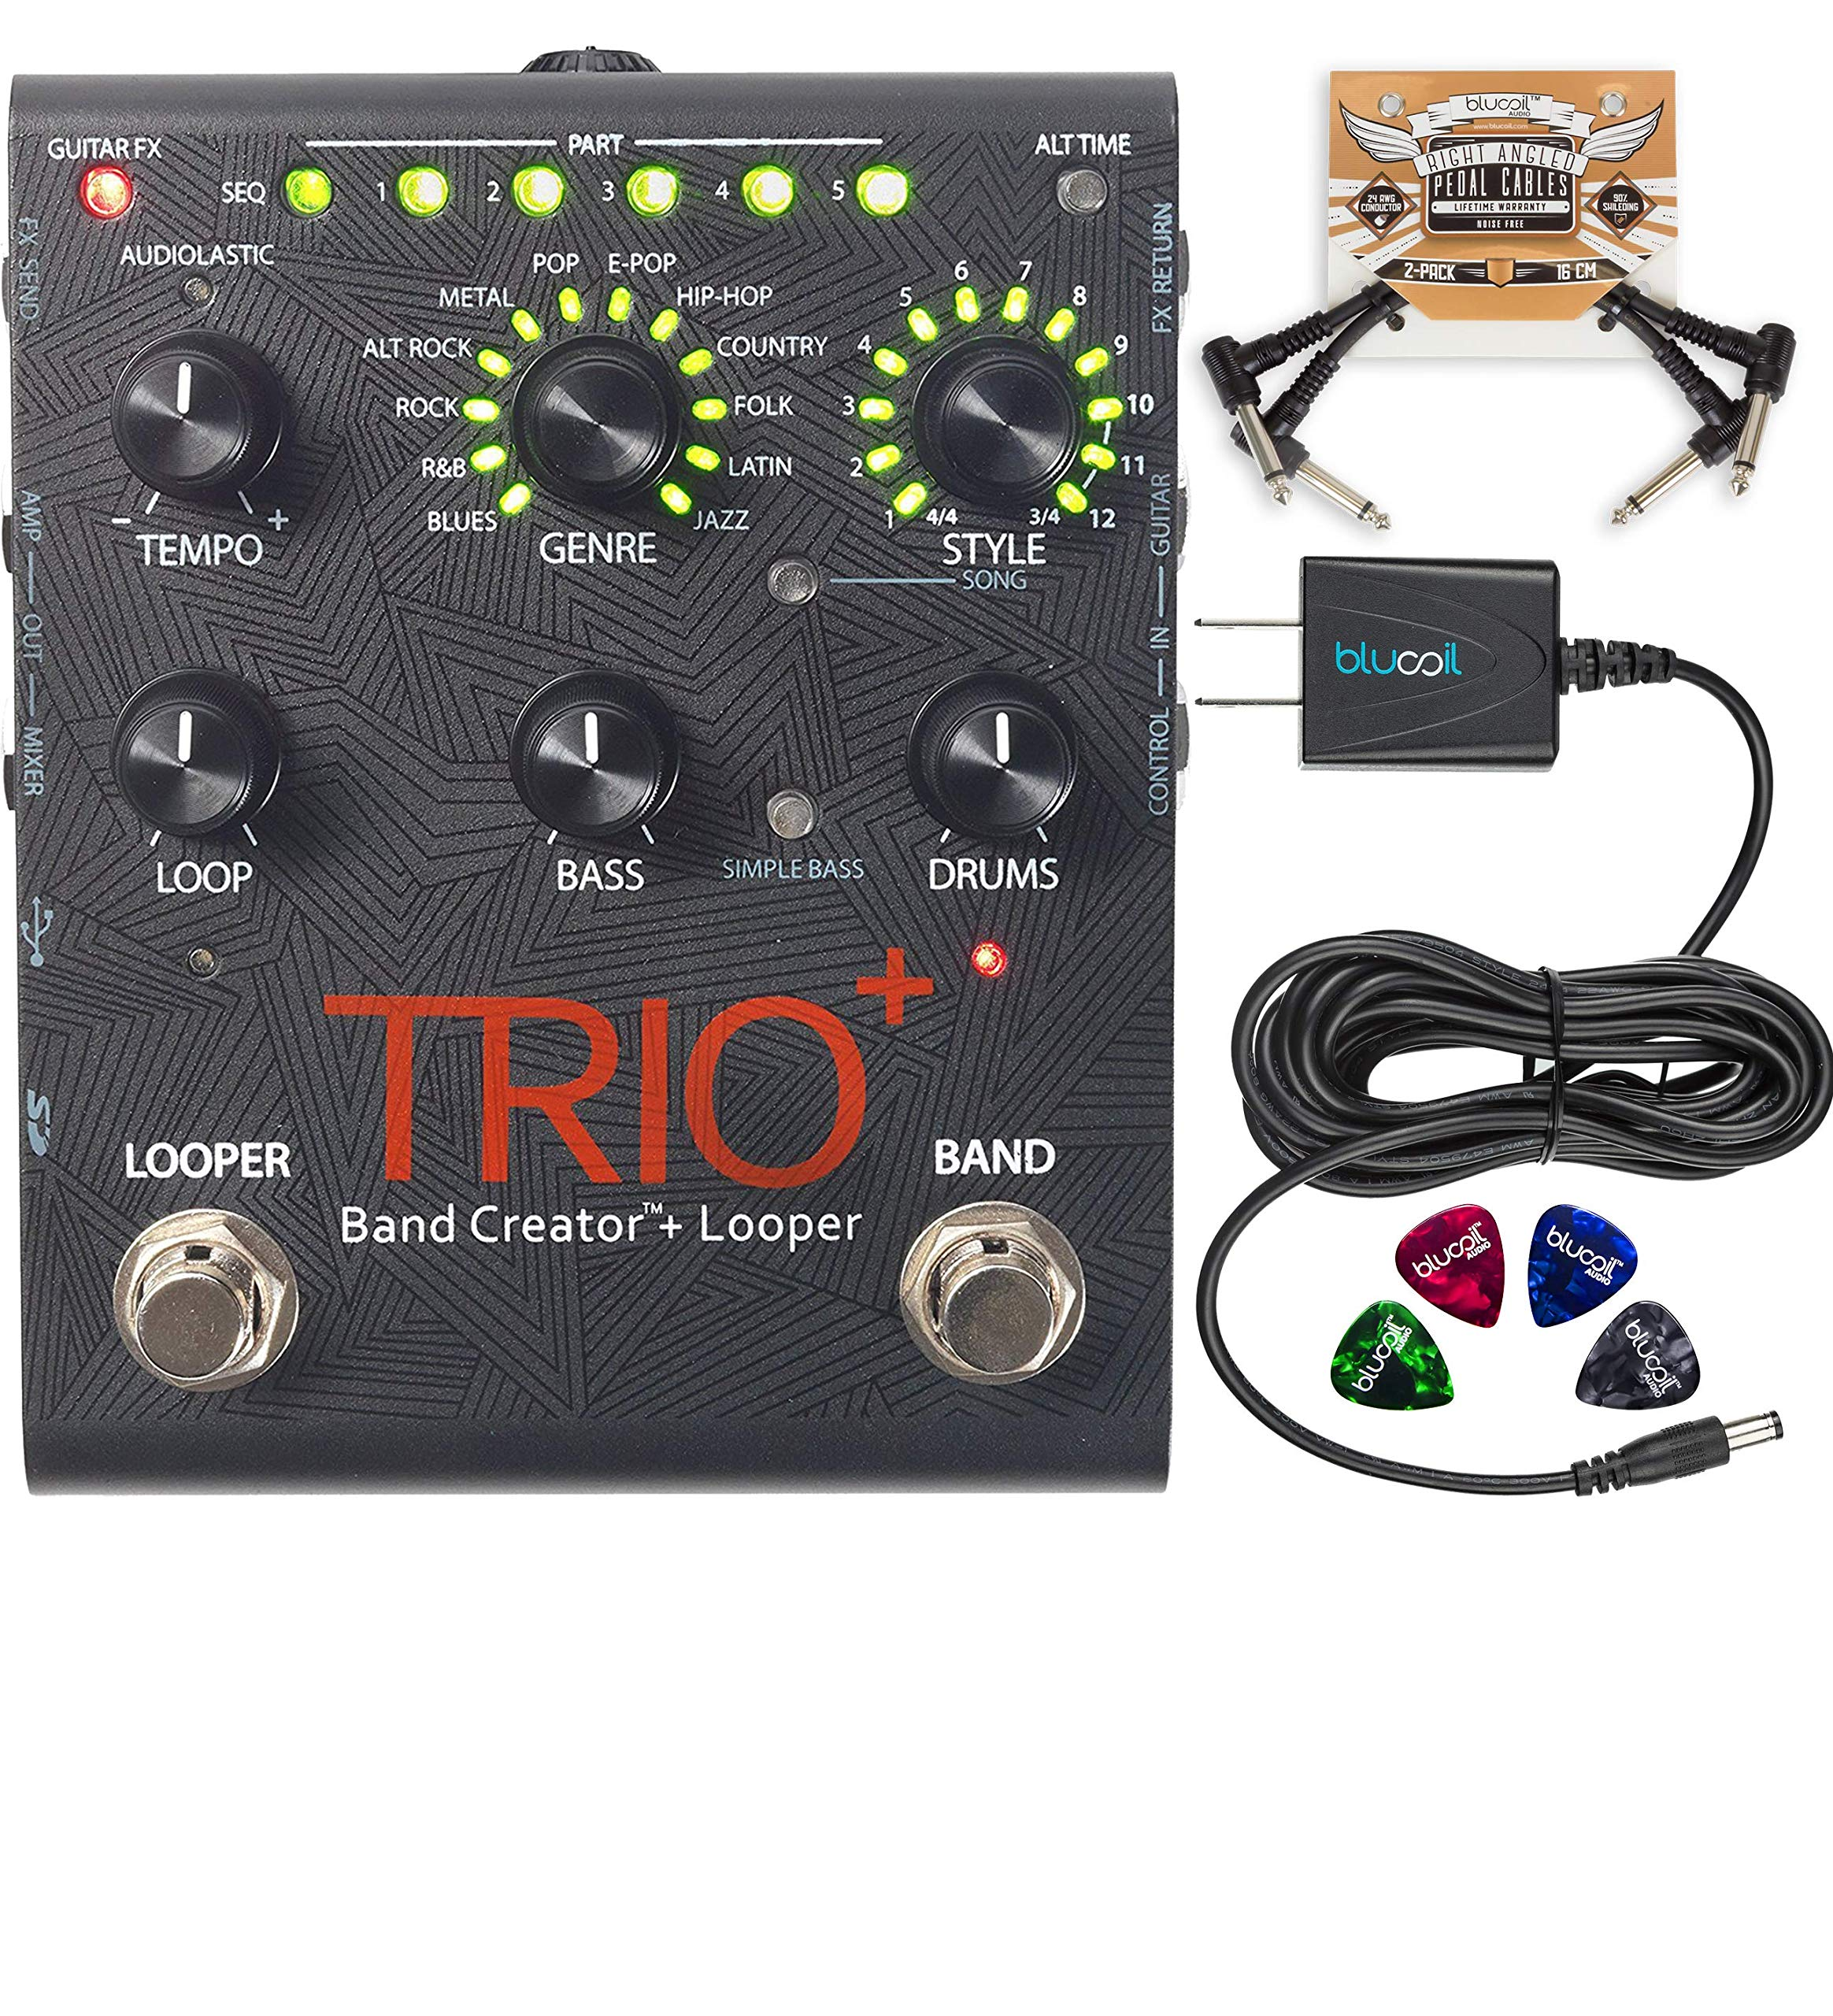 digitech trio plus looper band creator effects pedal with usb connection bundle with blucoil. Black Bedroom Furniture Sets. Home Design Ideas